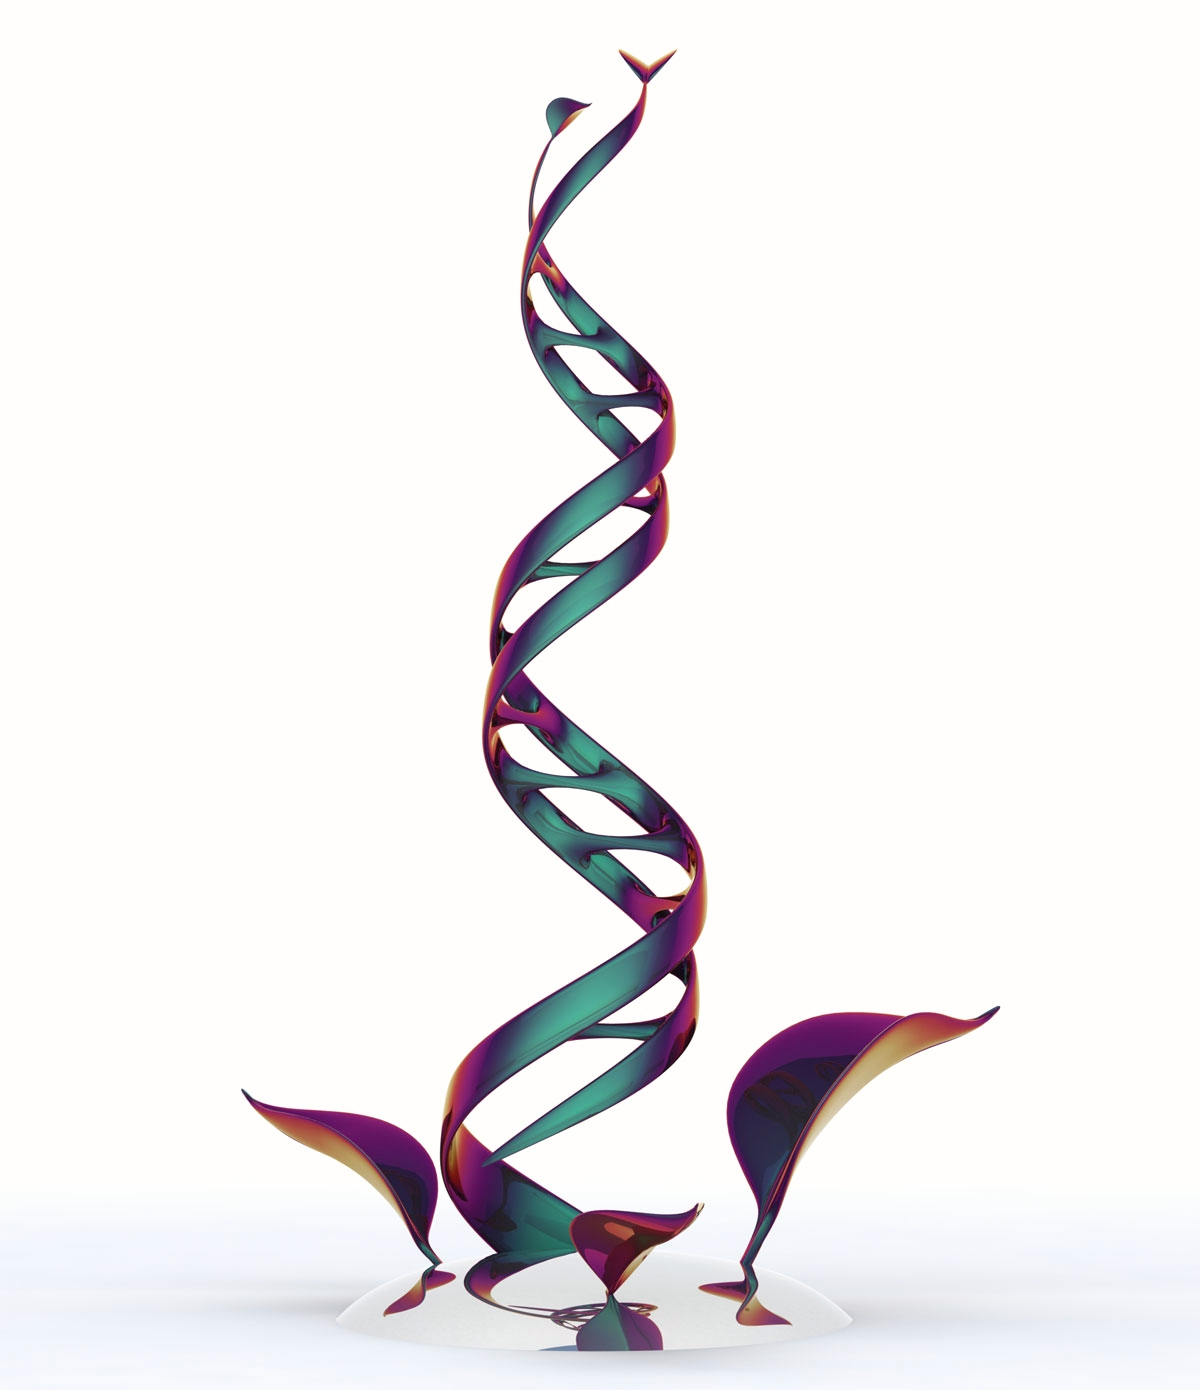 Dna Drawing | Free download best Dna Drawing on ClipArtMag.com